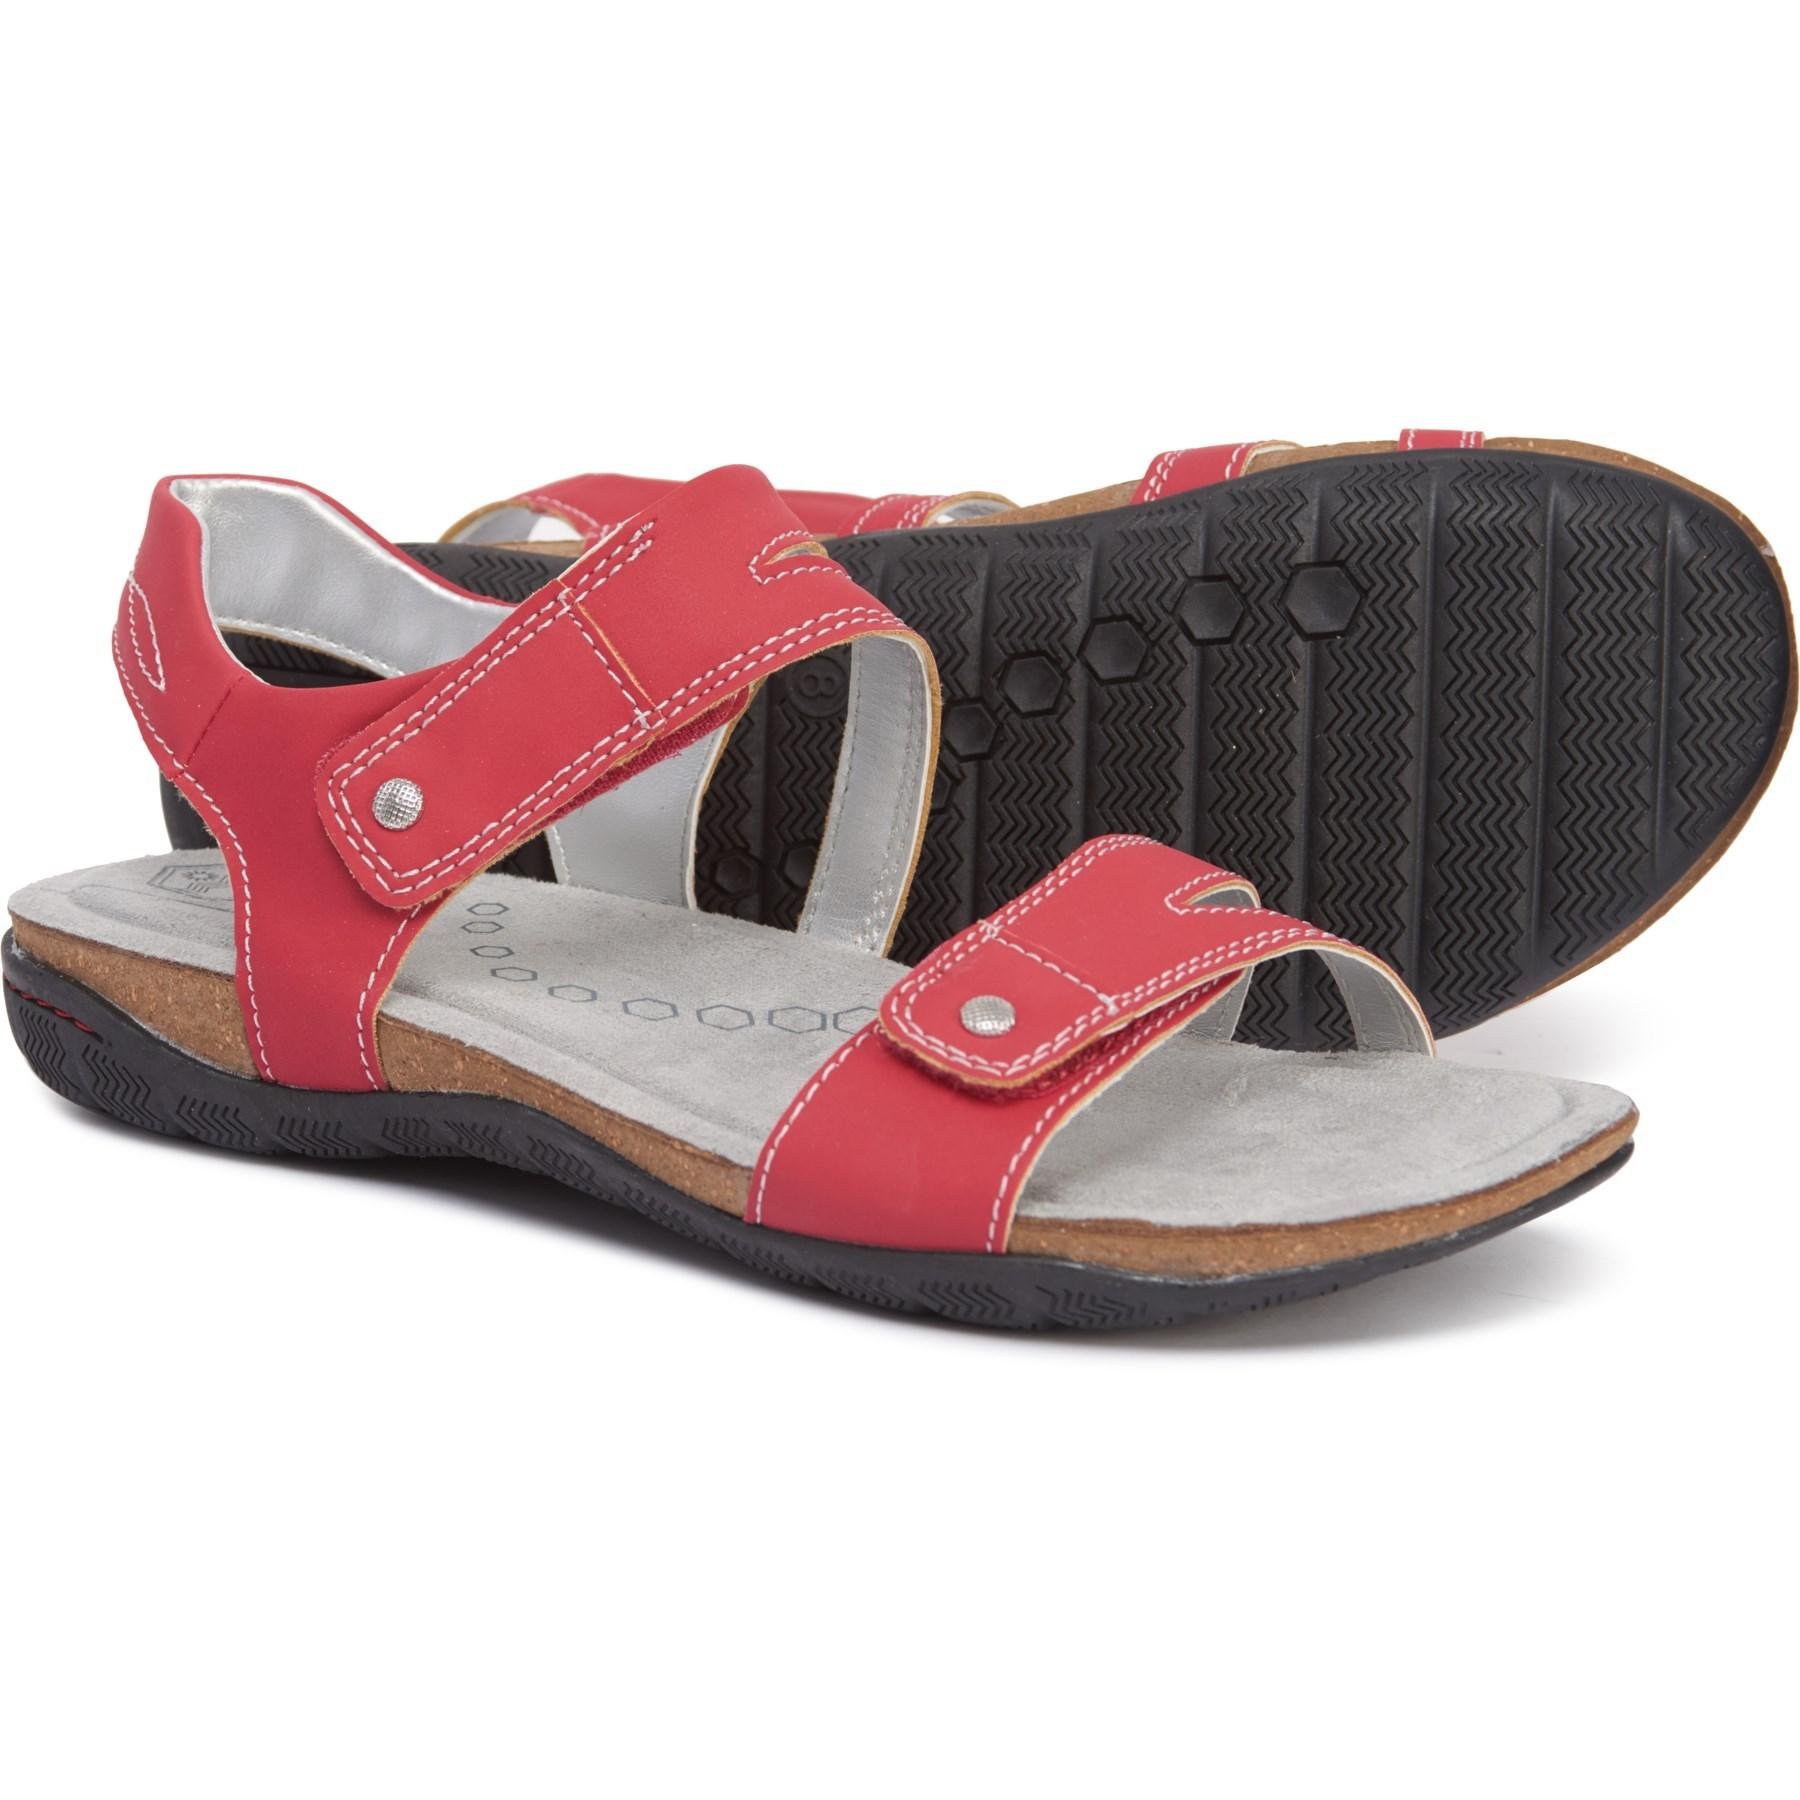 f63b5335a8 Lyst - Khombu Solace Sandals (for Women) in Red